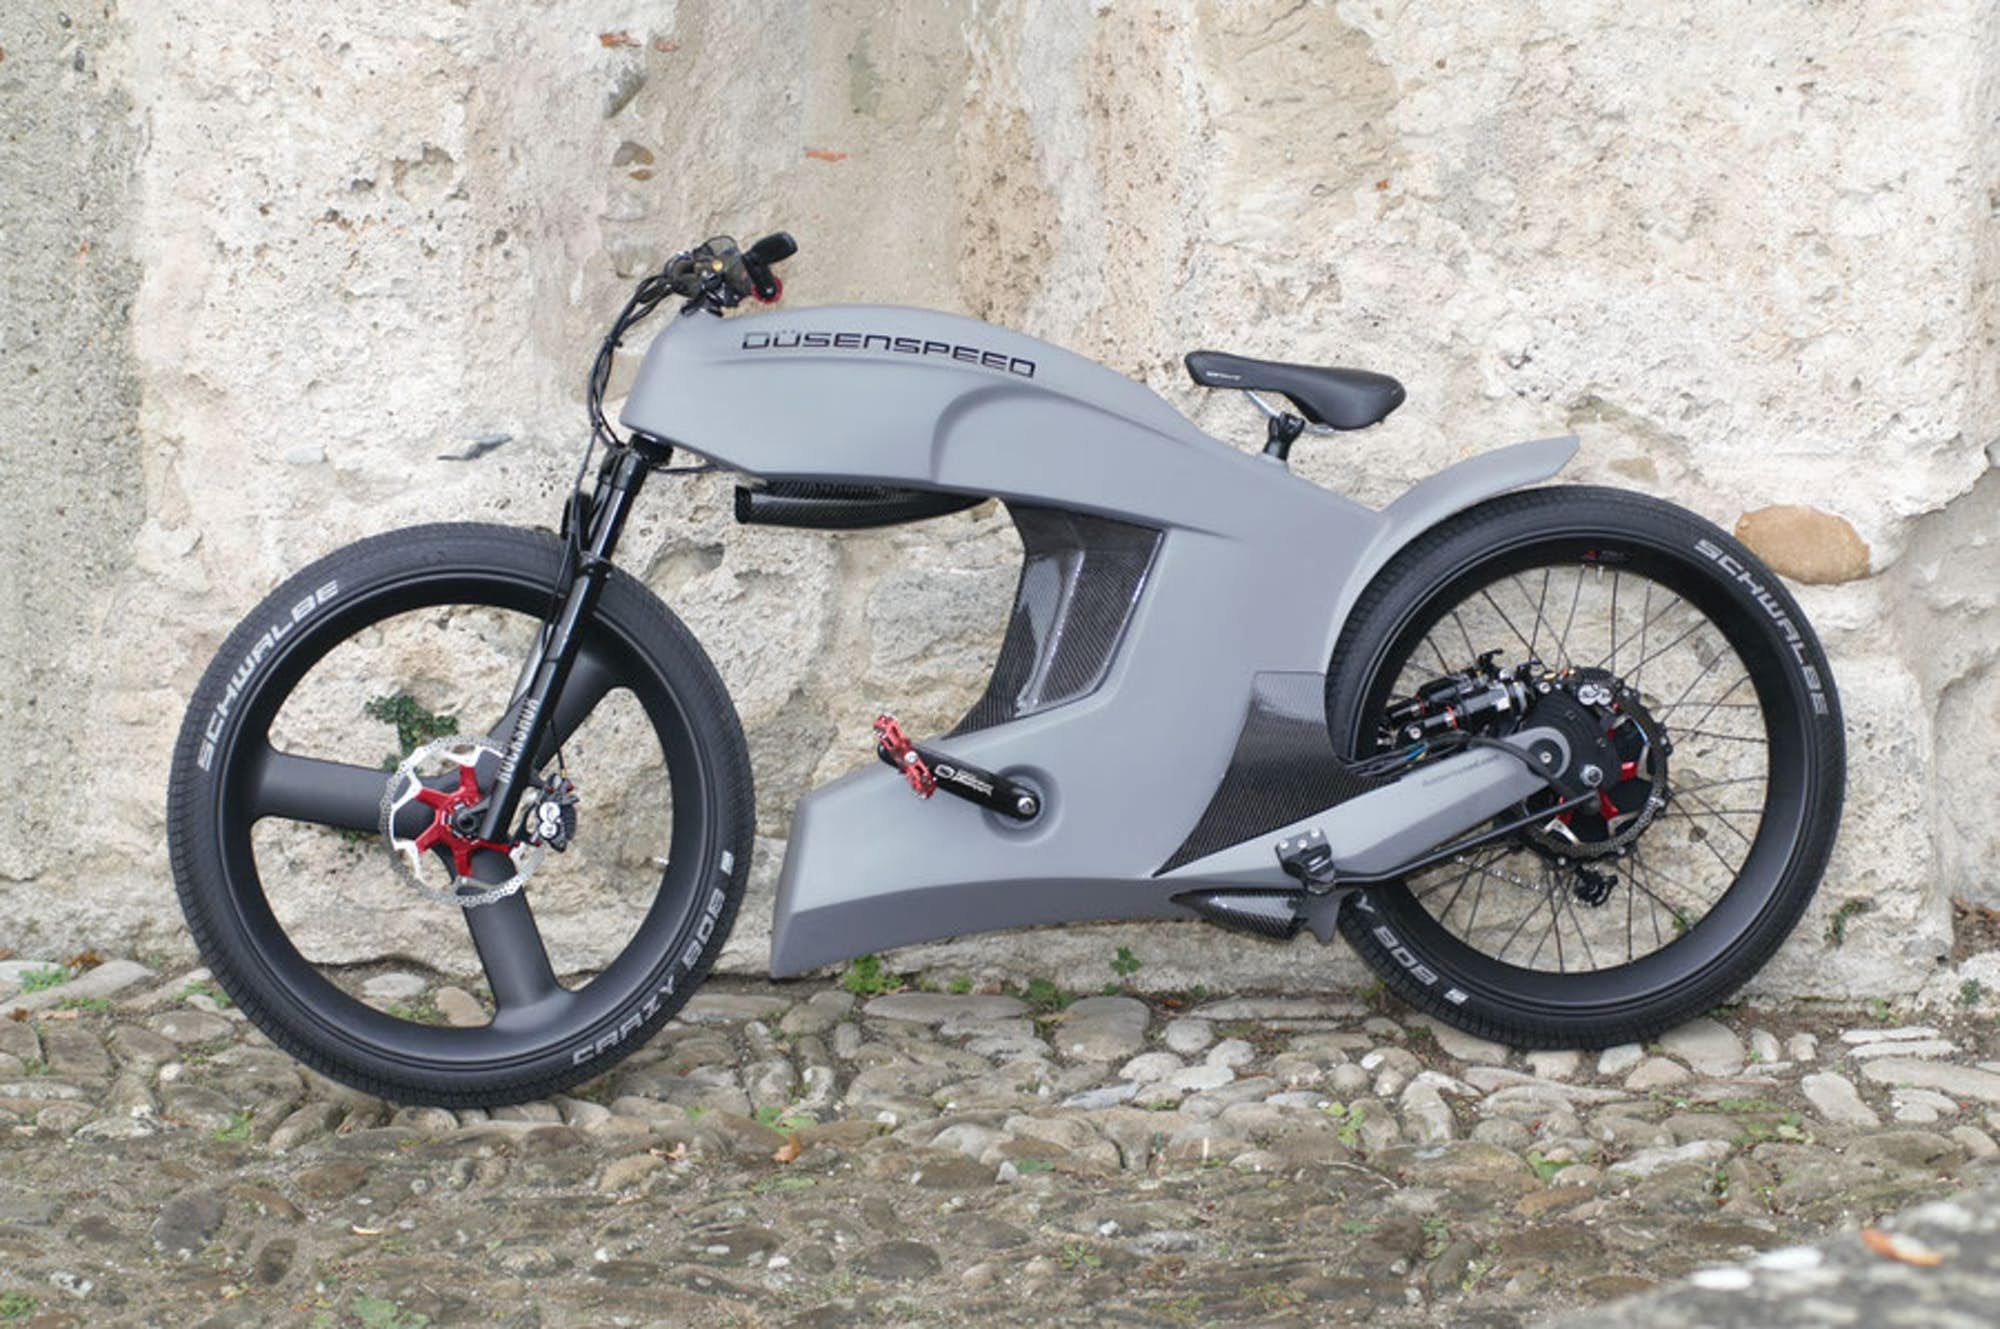 Dusenspeed Delivers Motorbike Performance In Retro Inspired E Bike